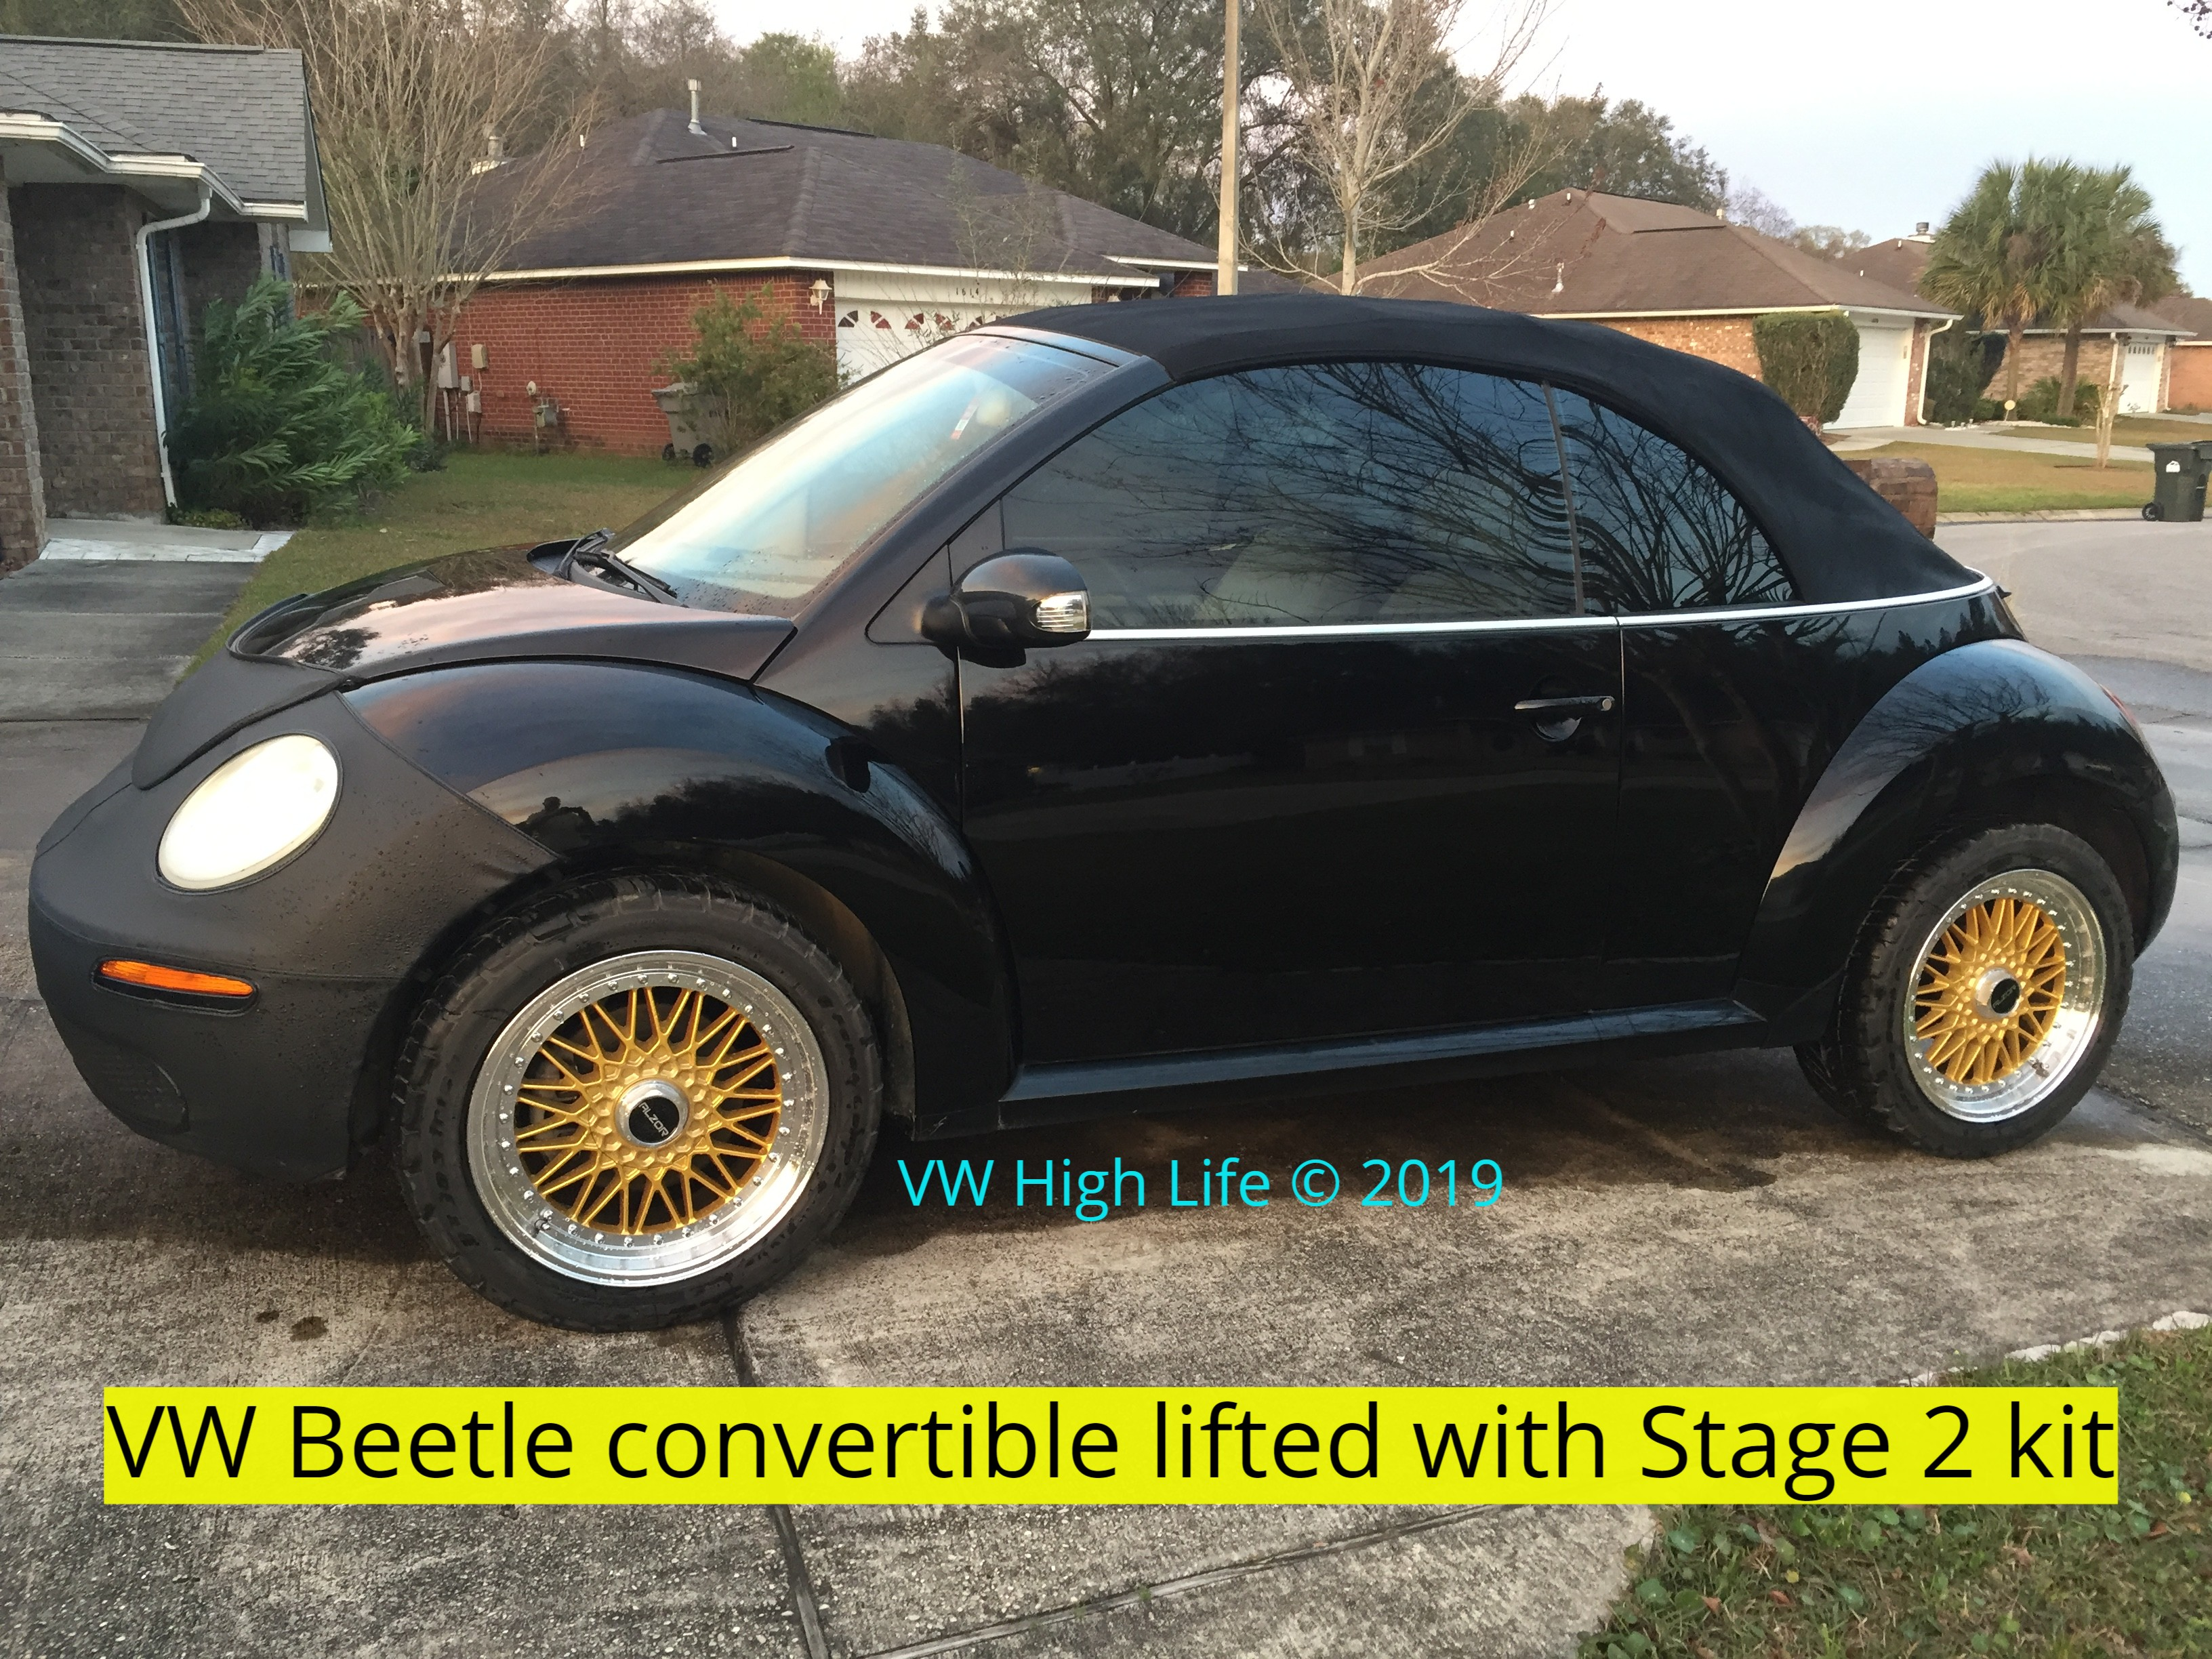 Vincent's Beetle